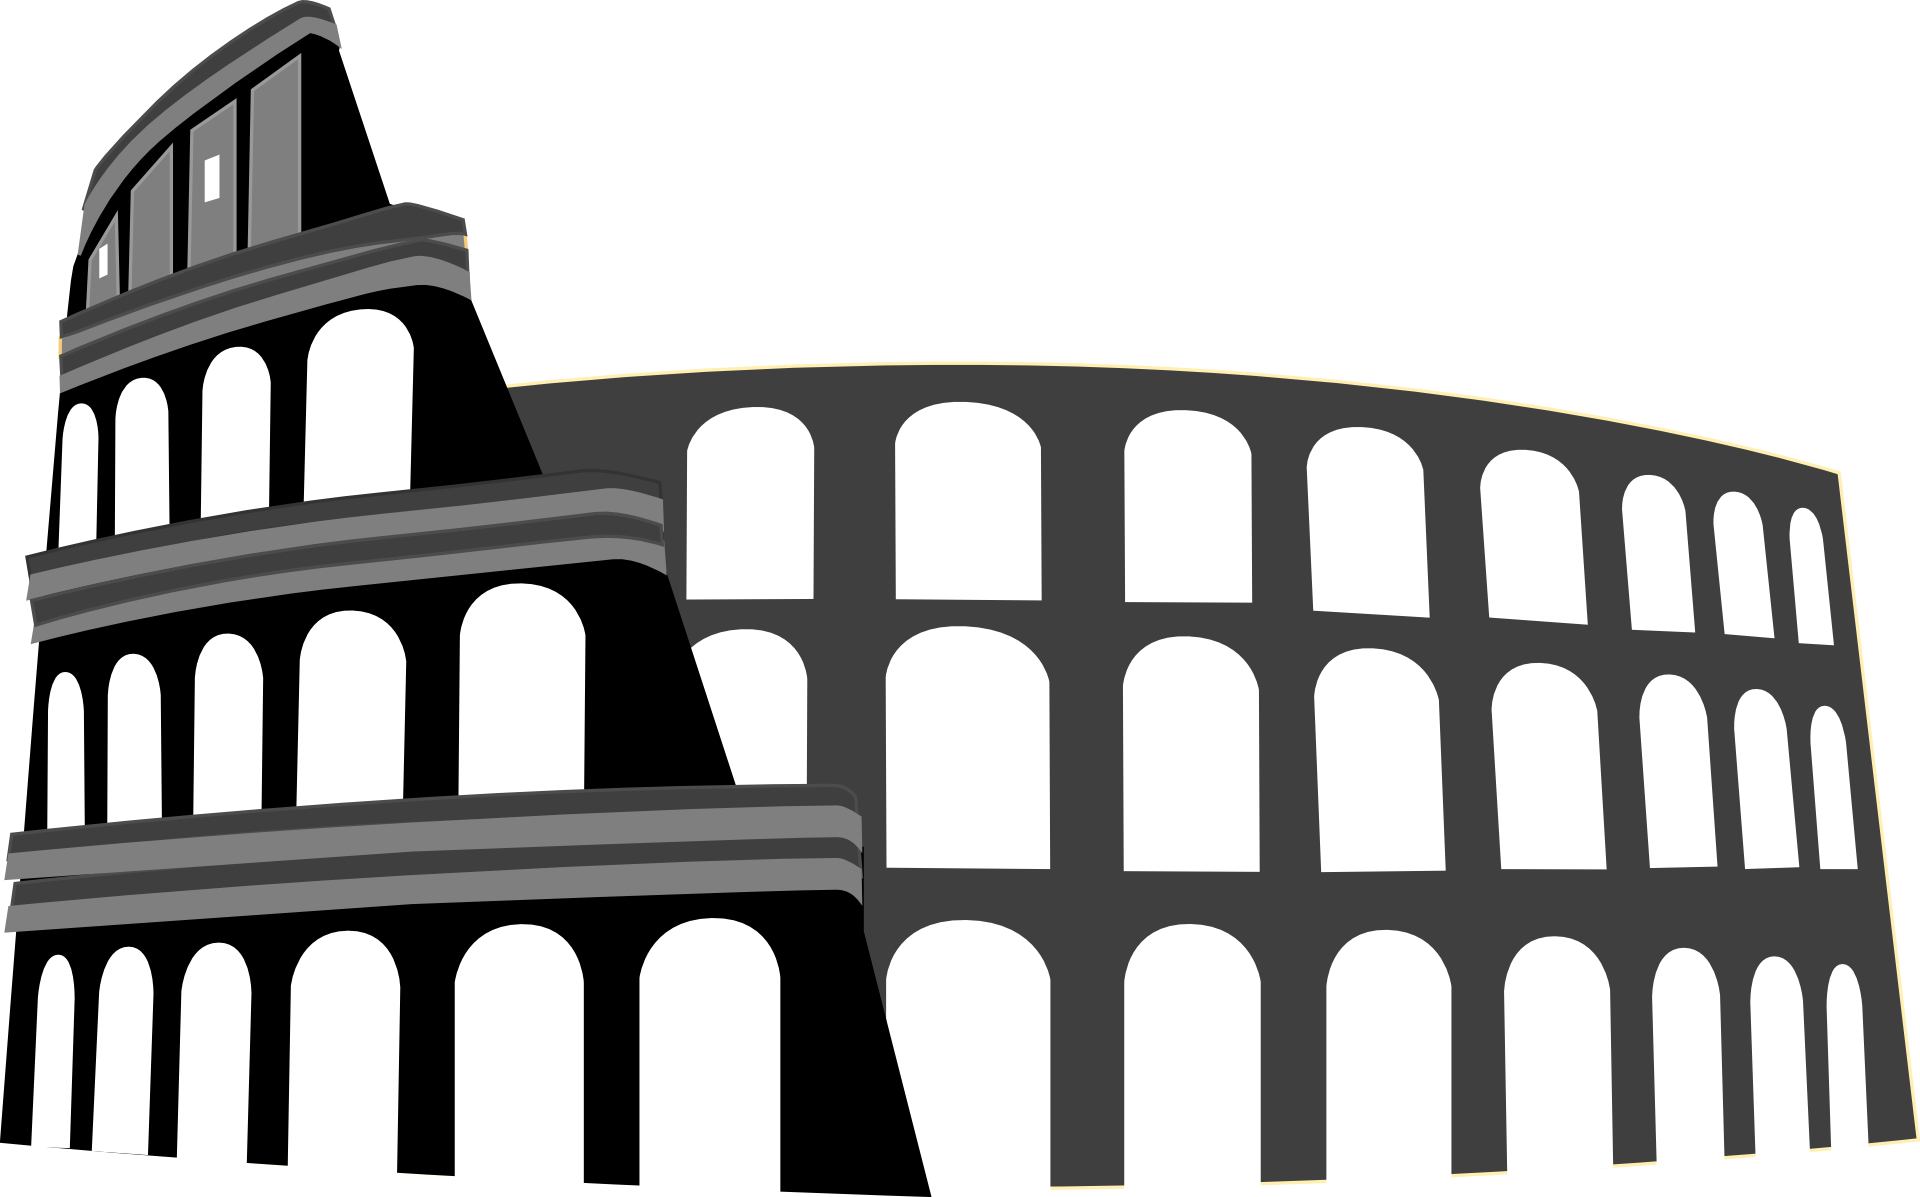 Exterior Of Colosseum Greyscale Illustration Free Image